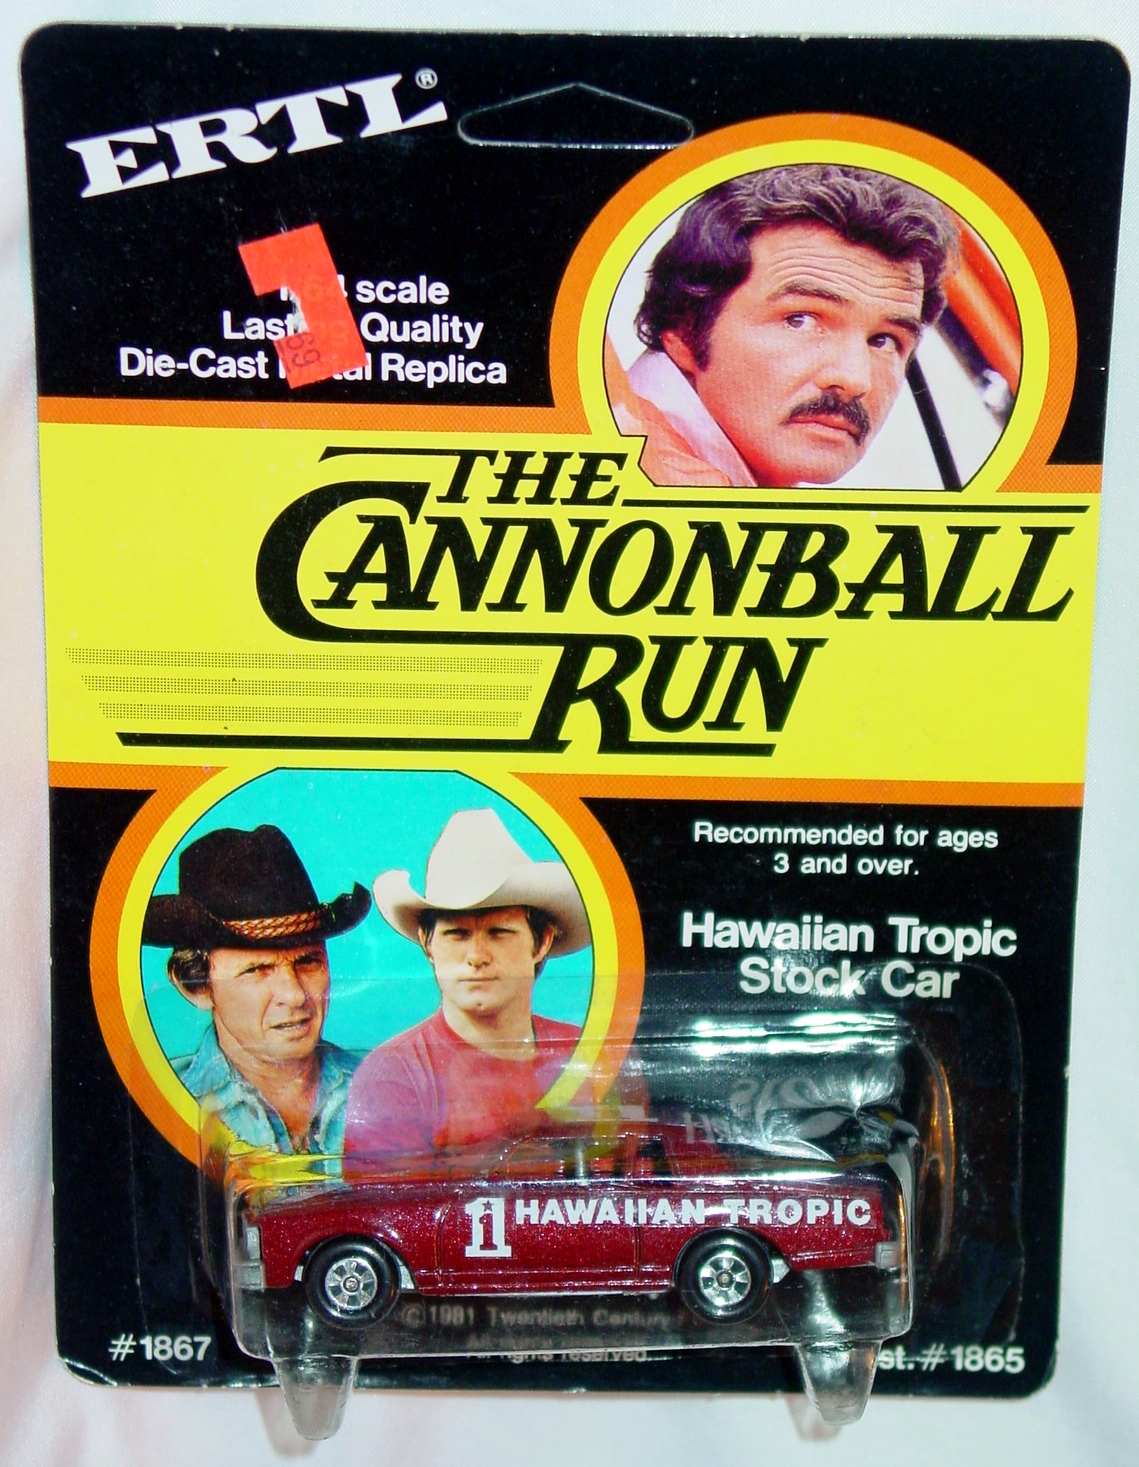 64 - ERTL 1867 80 Chevy Stocker Cannonball Run